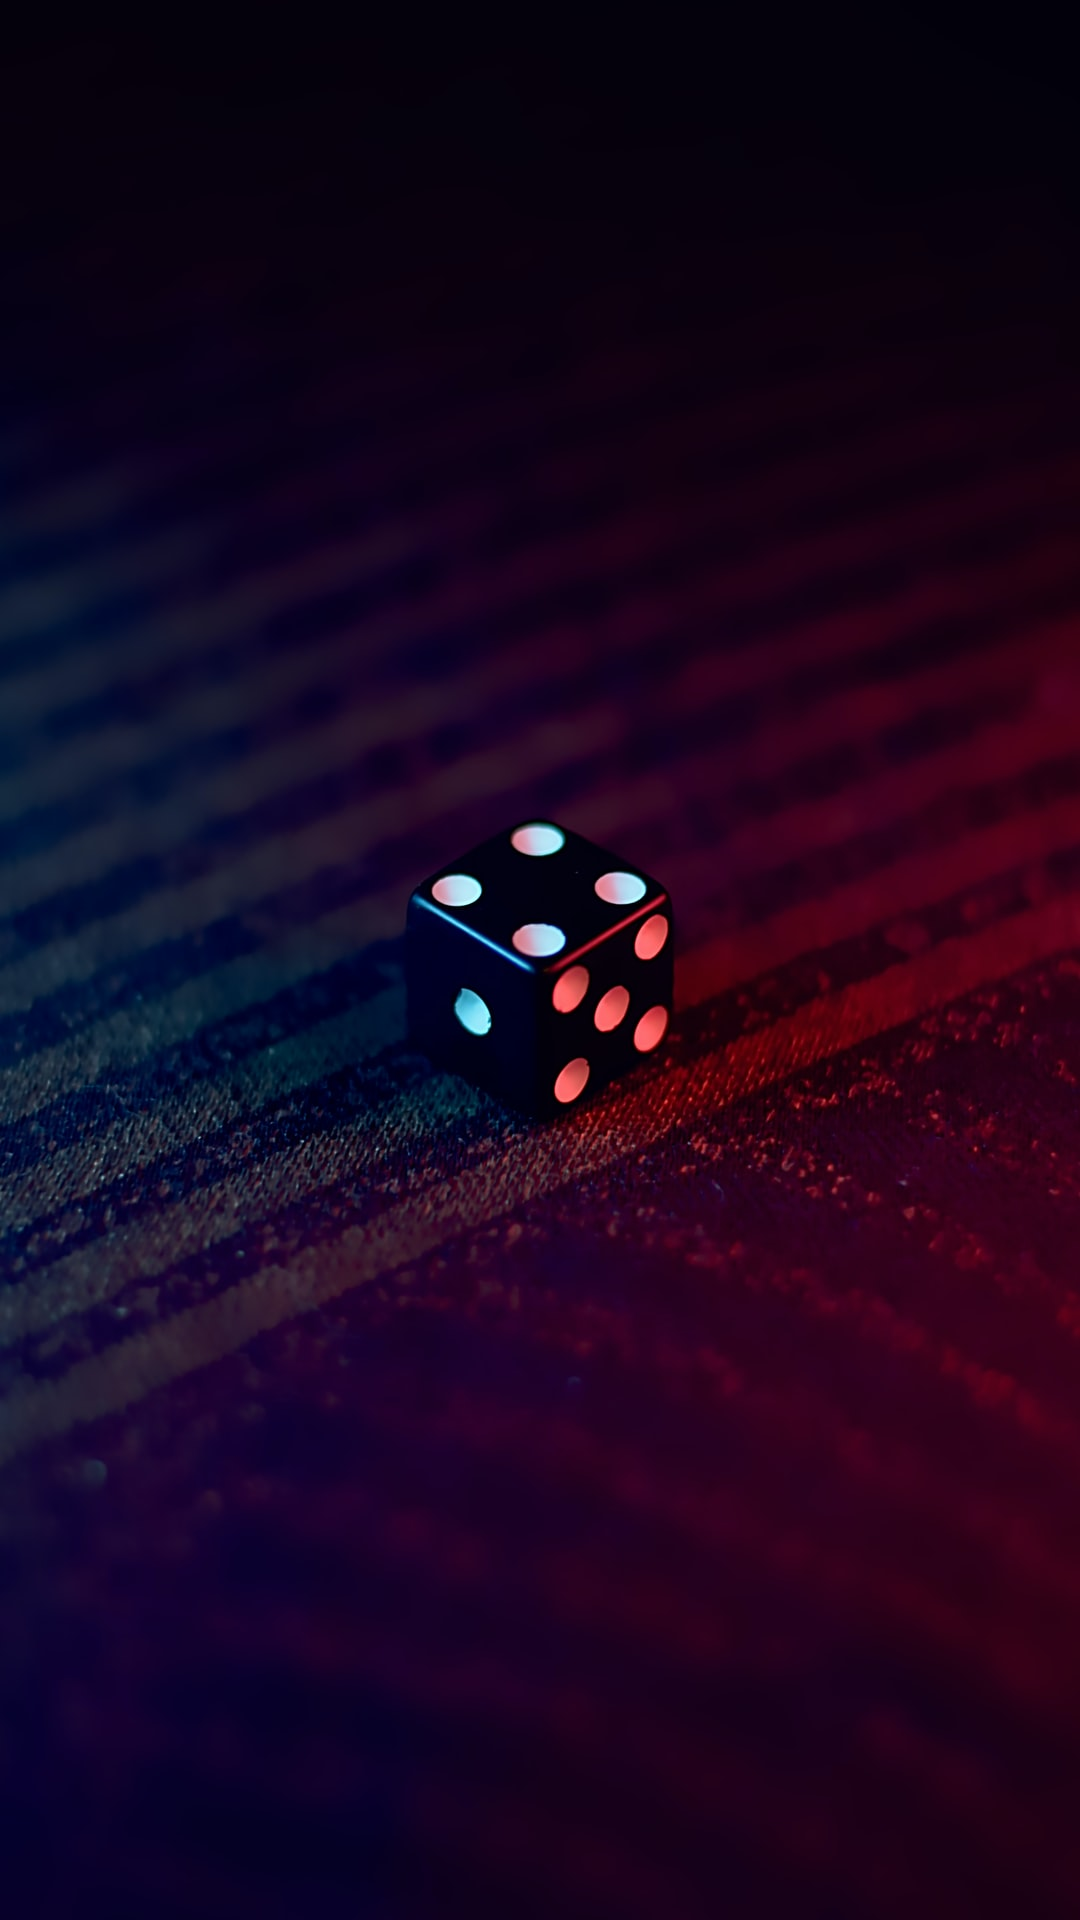 A black die set on abstract background.